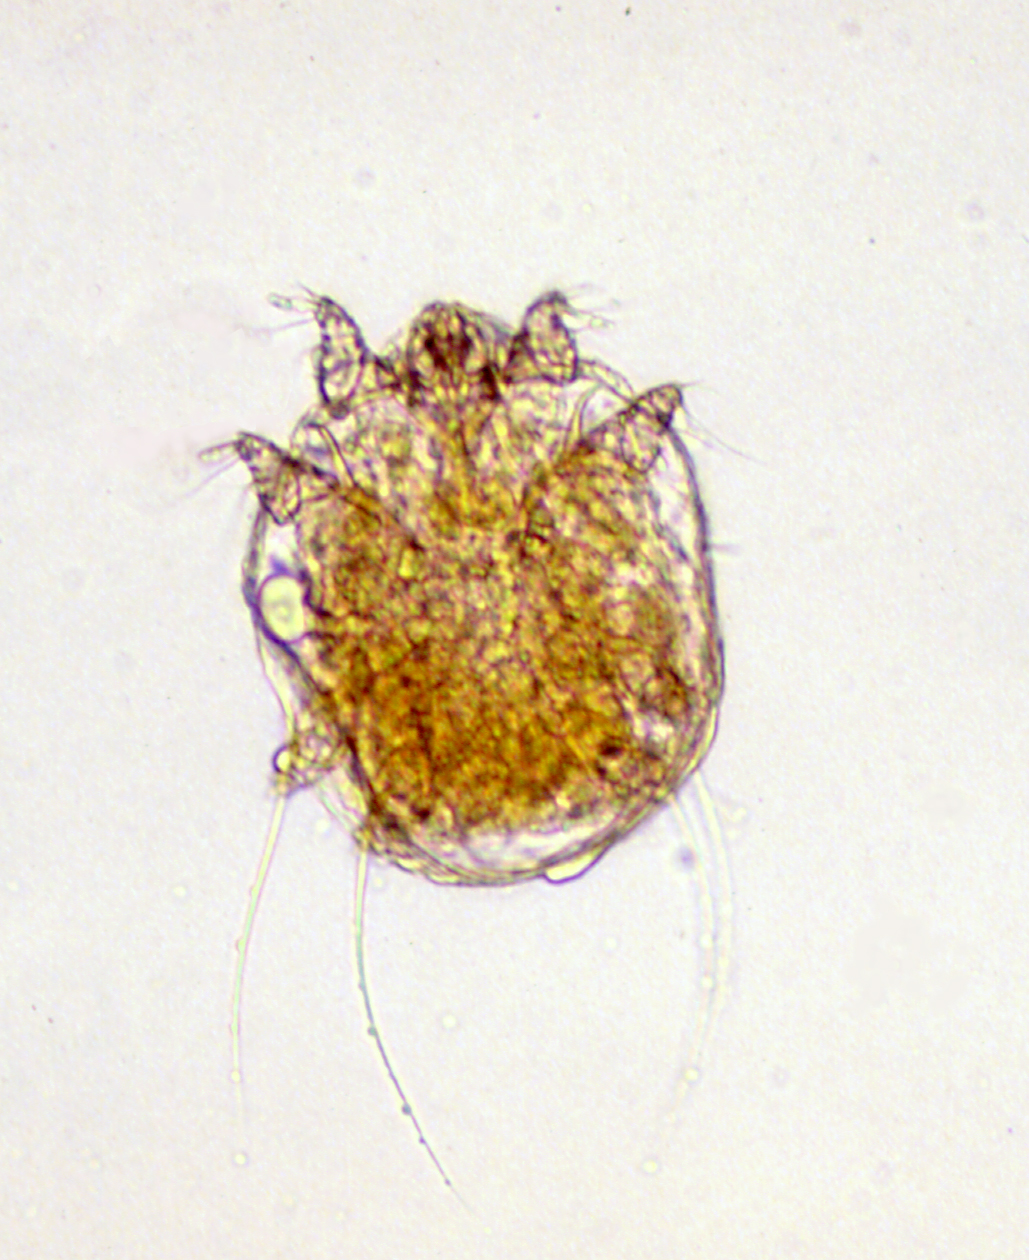 Slideshow: Pictures of scabies - WebMD Boots